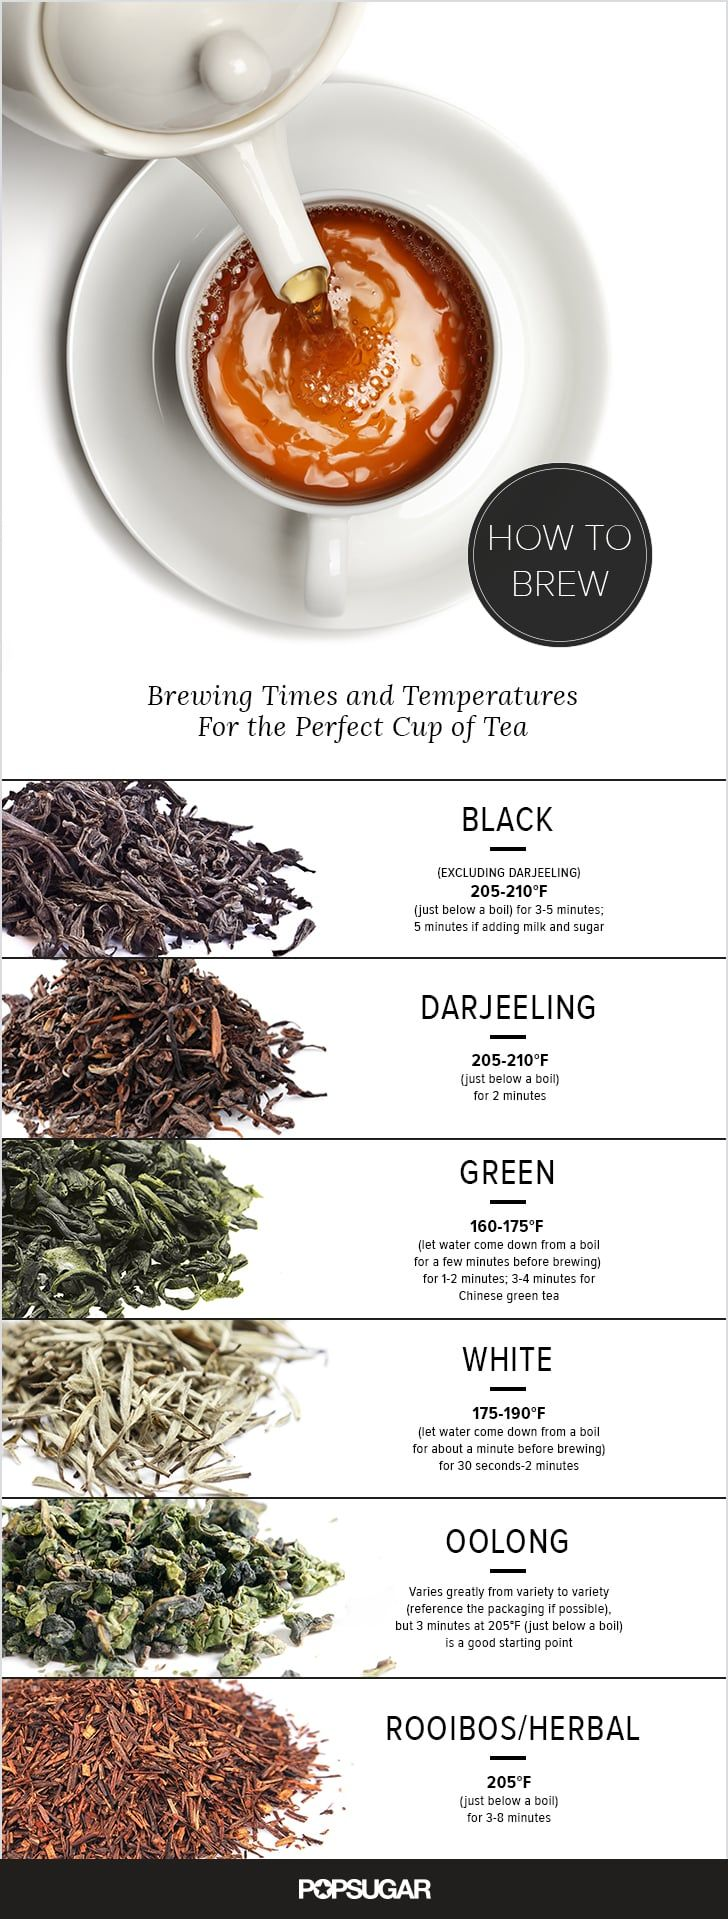 how to make loose leaf tea in a teapot